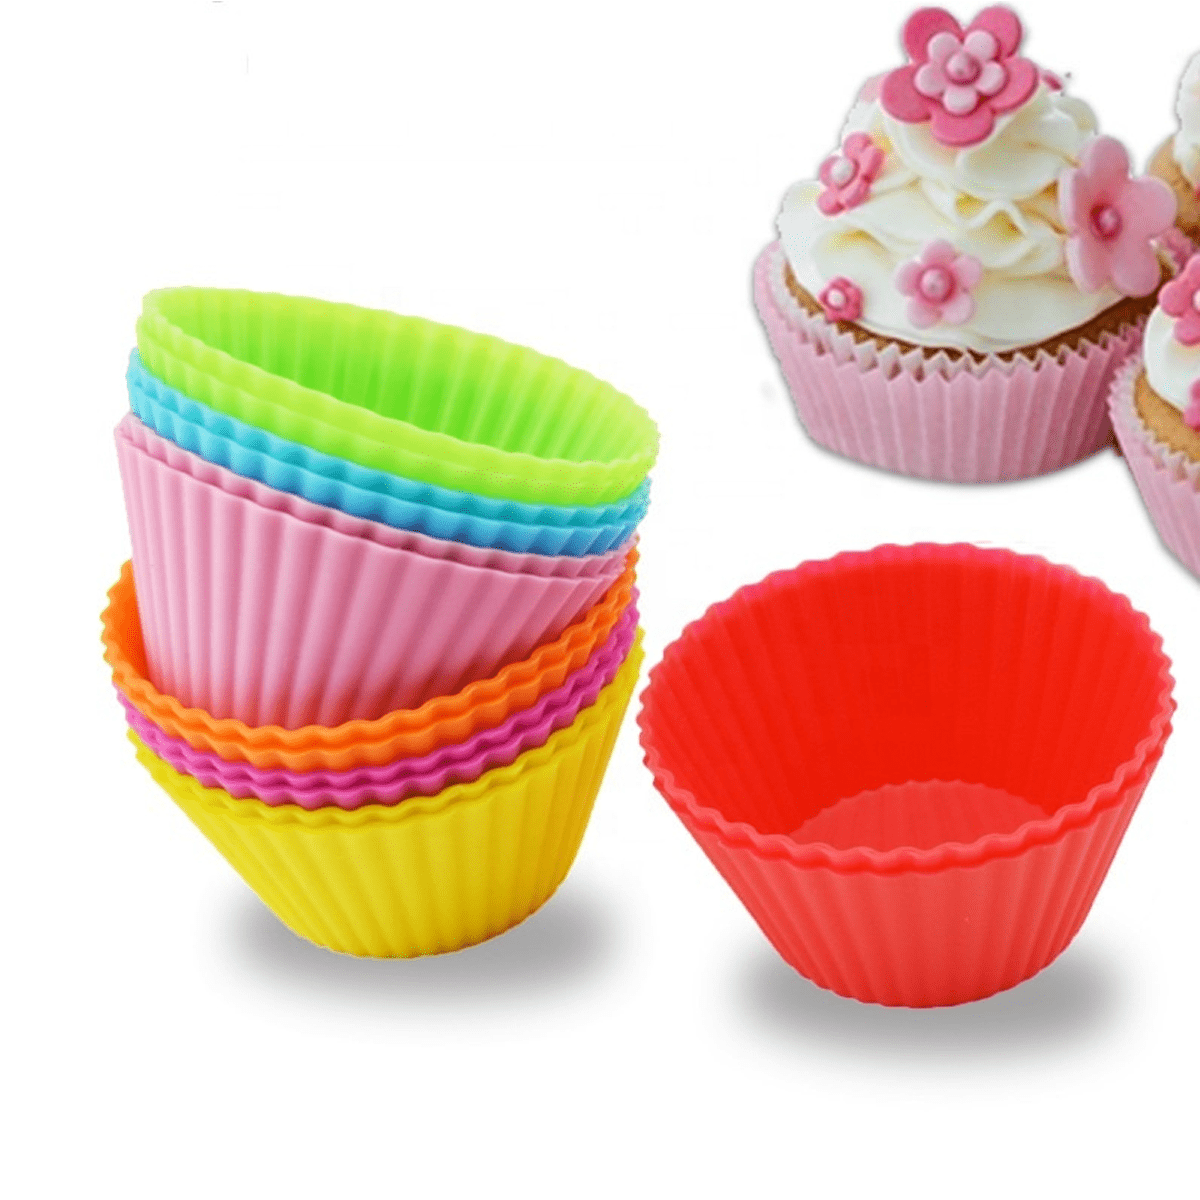 Reusable Silicone Baking Cups - Set of 12